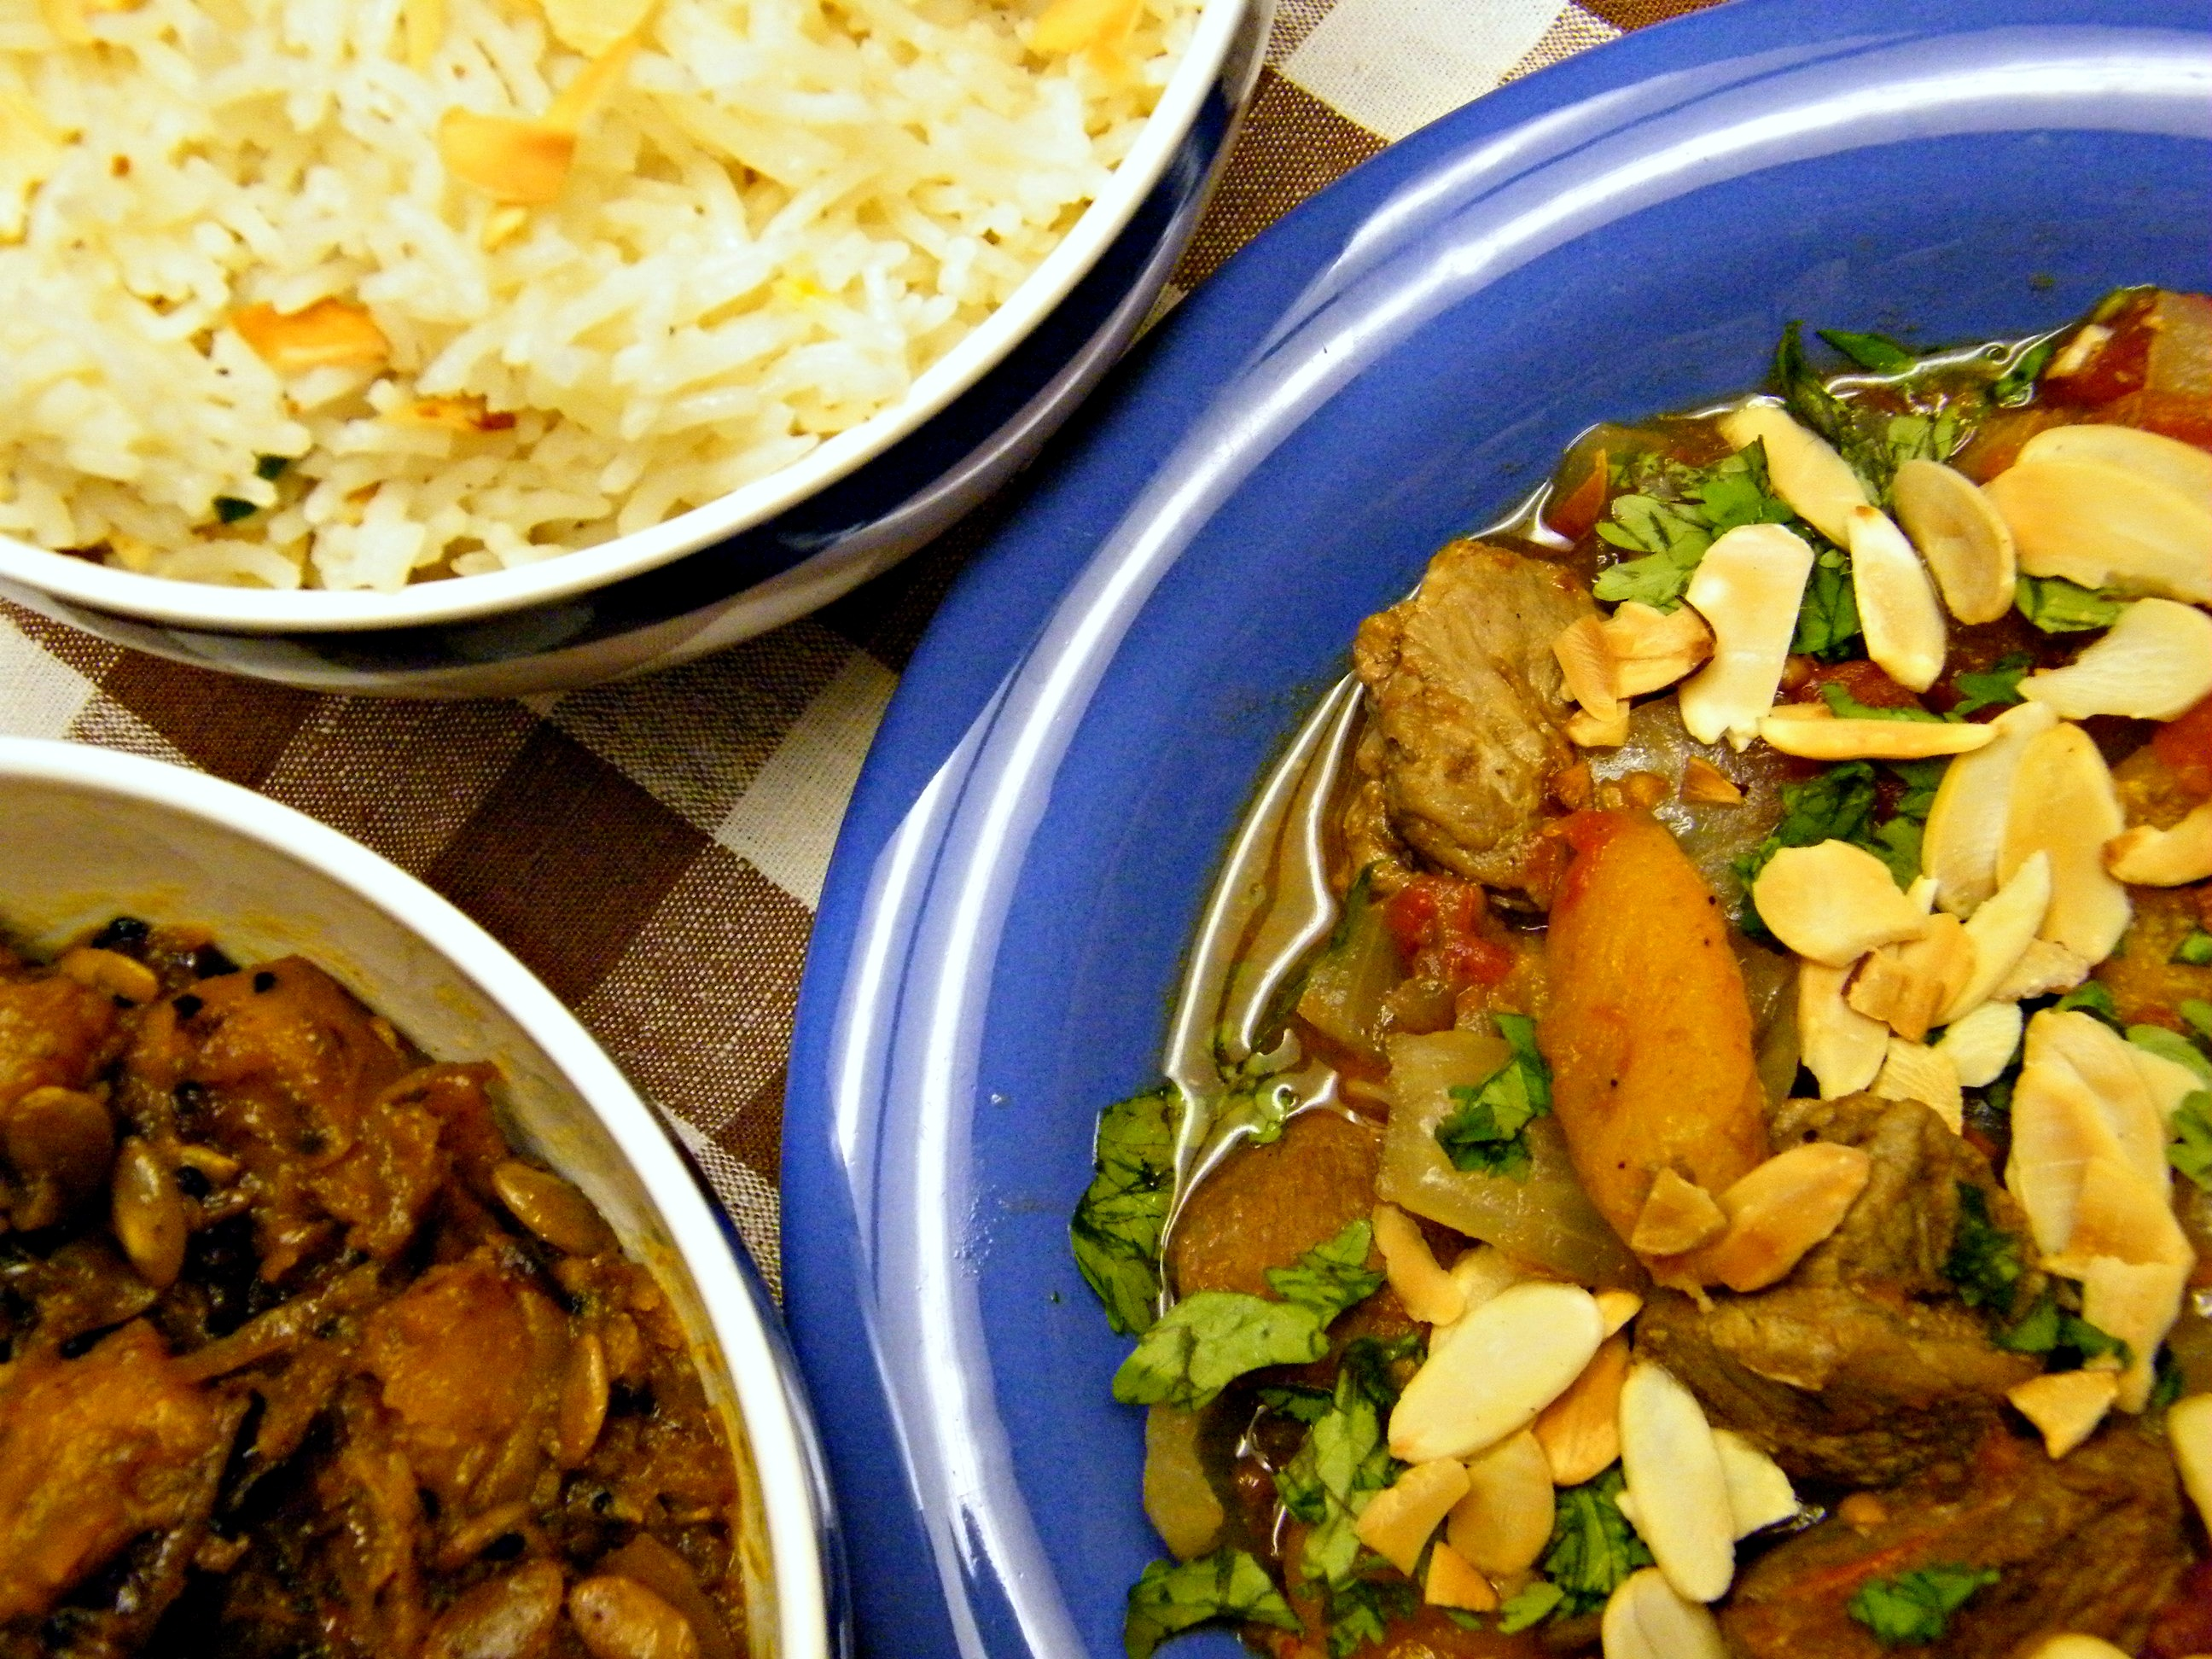 ... Orange & Olive Salad and Lamb & Dried Apricot Tagine | One Wet Foot